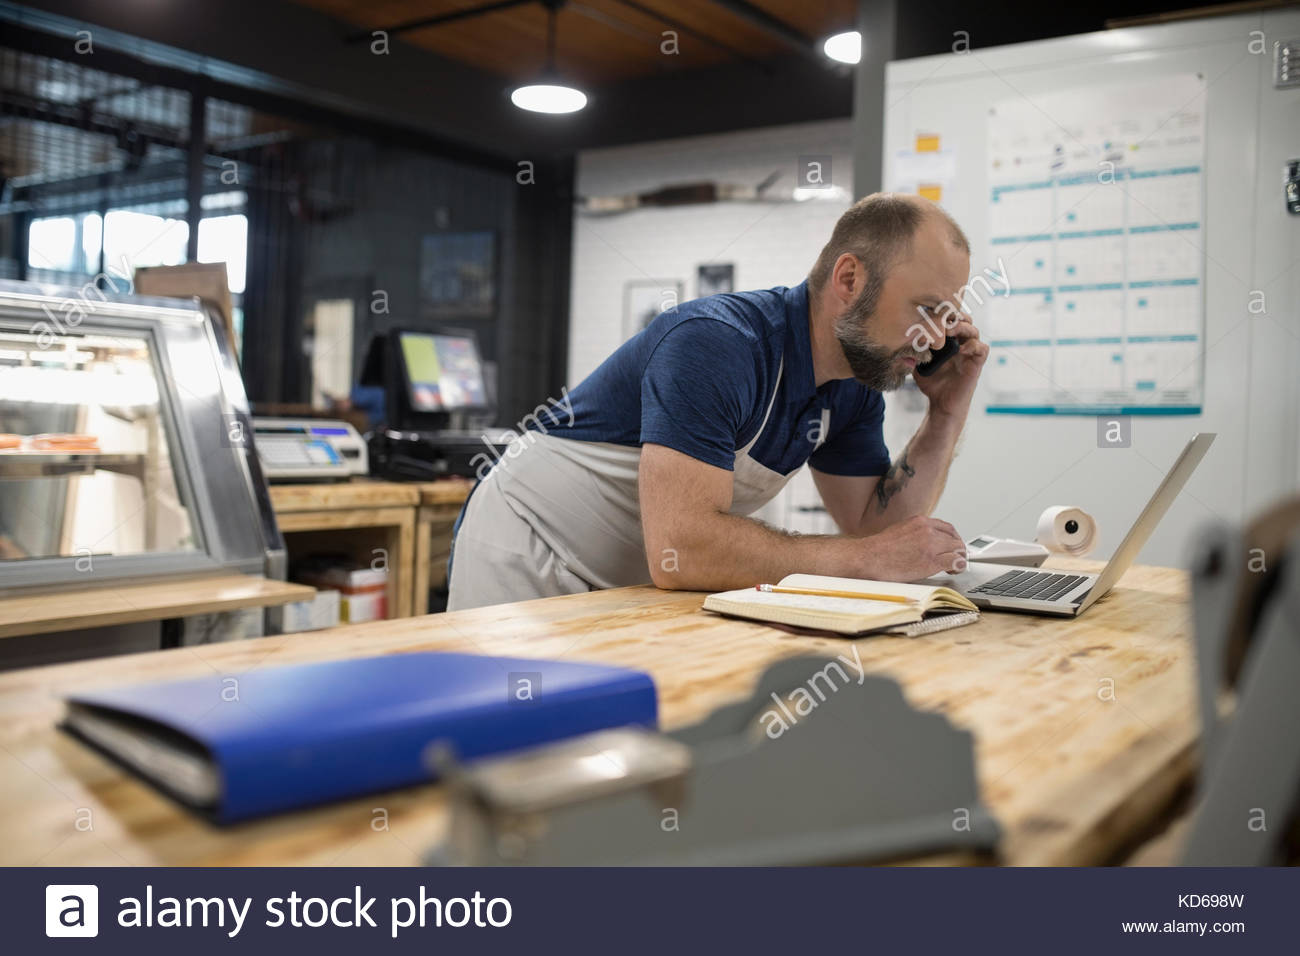 Male butcher paying bills, working at laptop and talking on cell phone in butcher - Stock Image